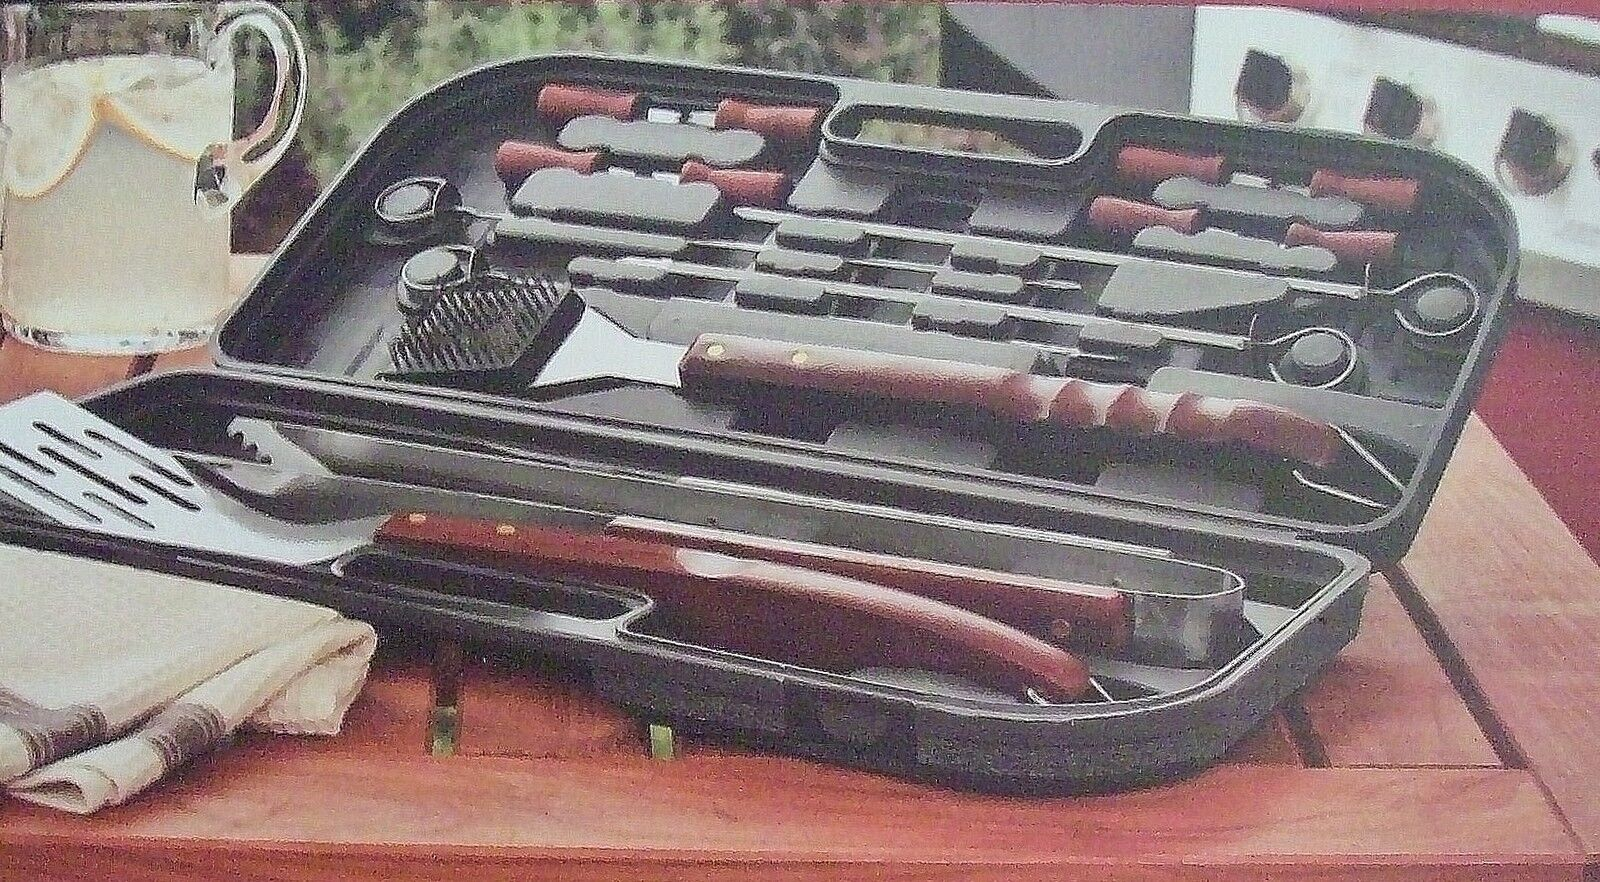 Chefmate 16 Piece Bbq Tool Set With Case Stainless Steel Wood Handle Barbecue